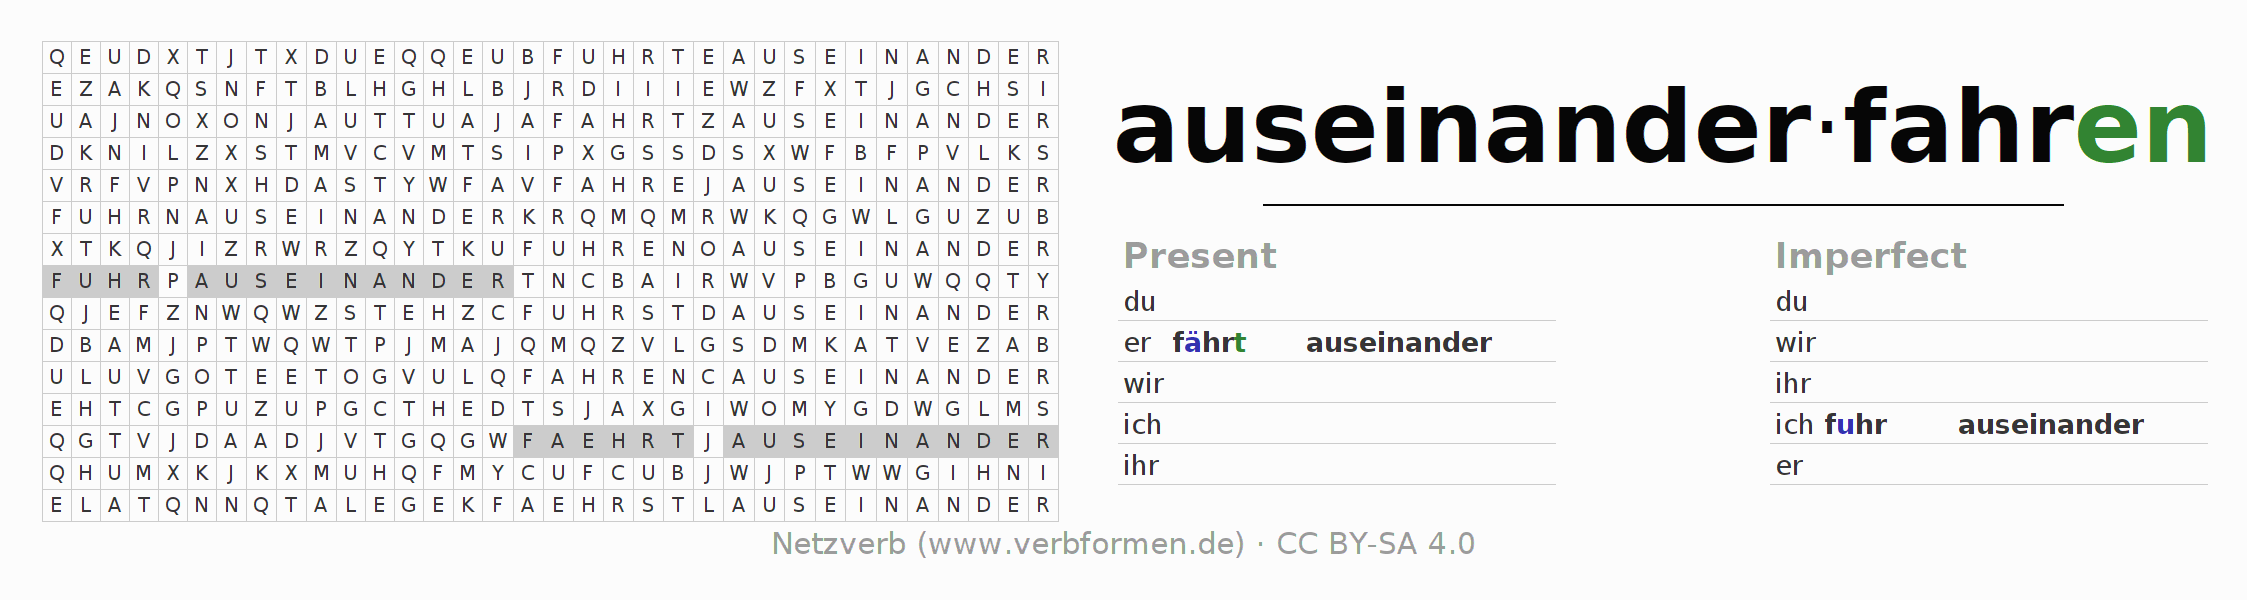 Word search puzzle for the conjugation of the verb auseinanderfahren